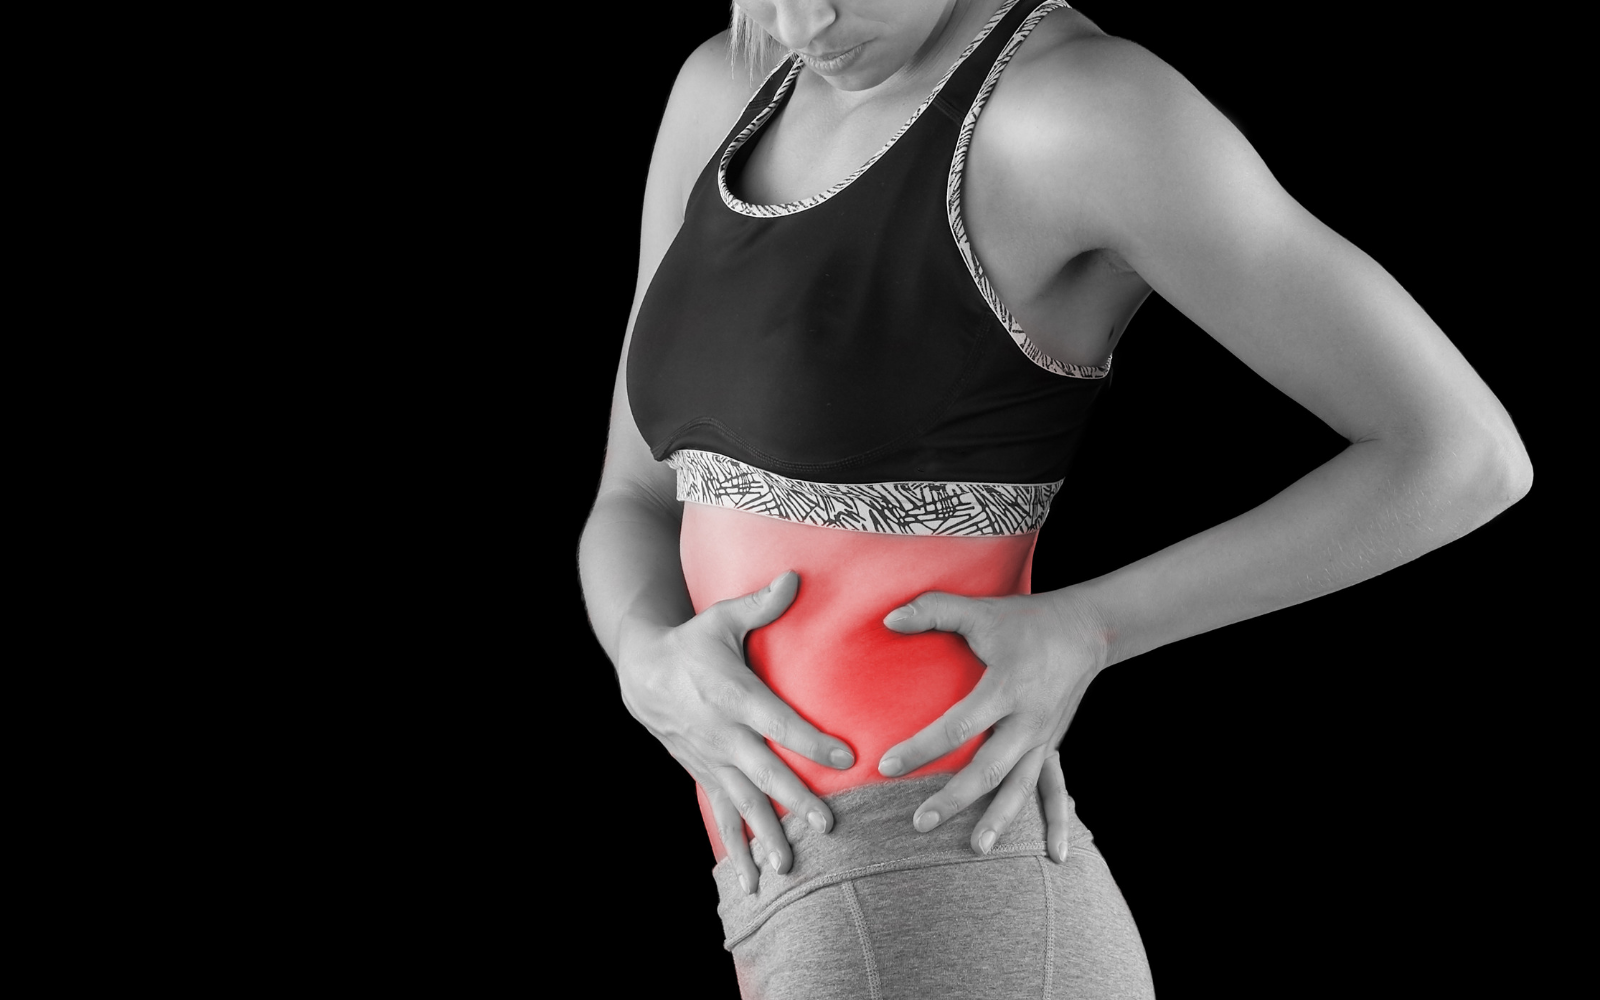 Left Stomach Pain: What Are The Scientifically-Proven Reasons?